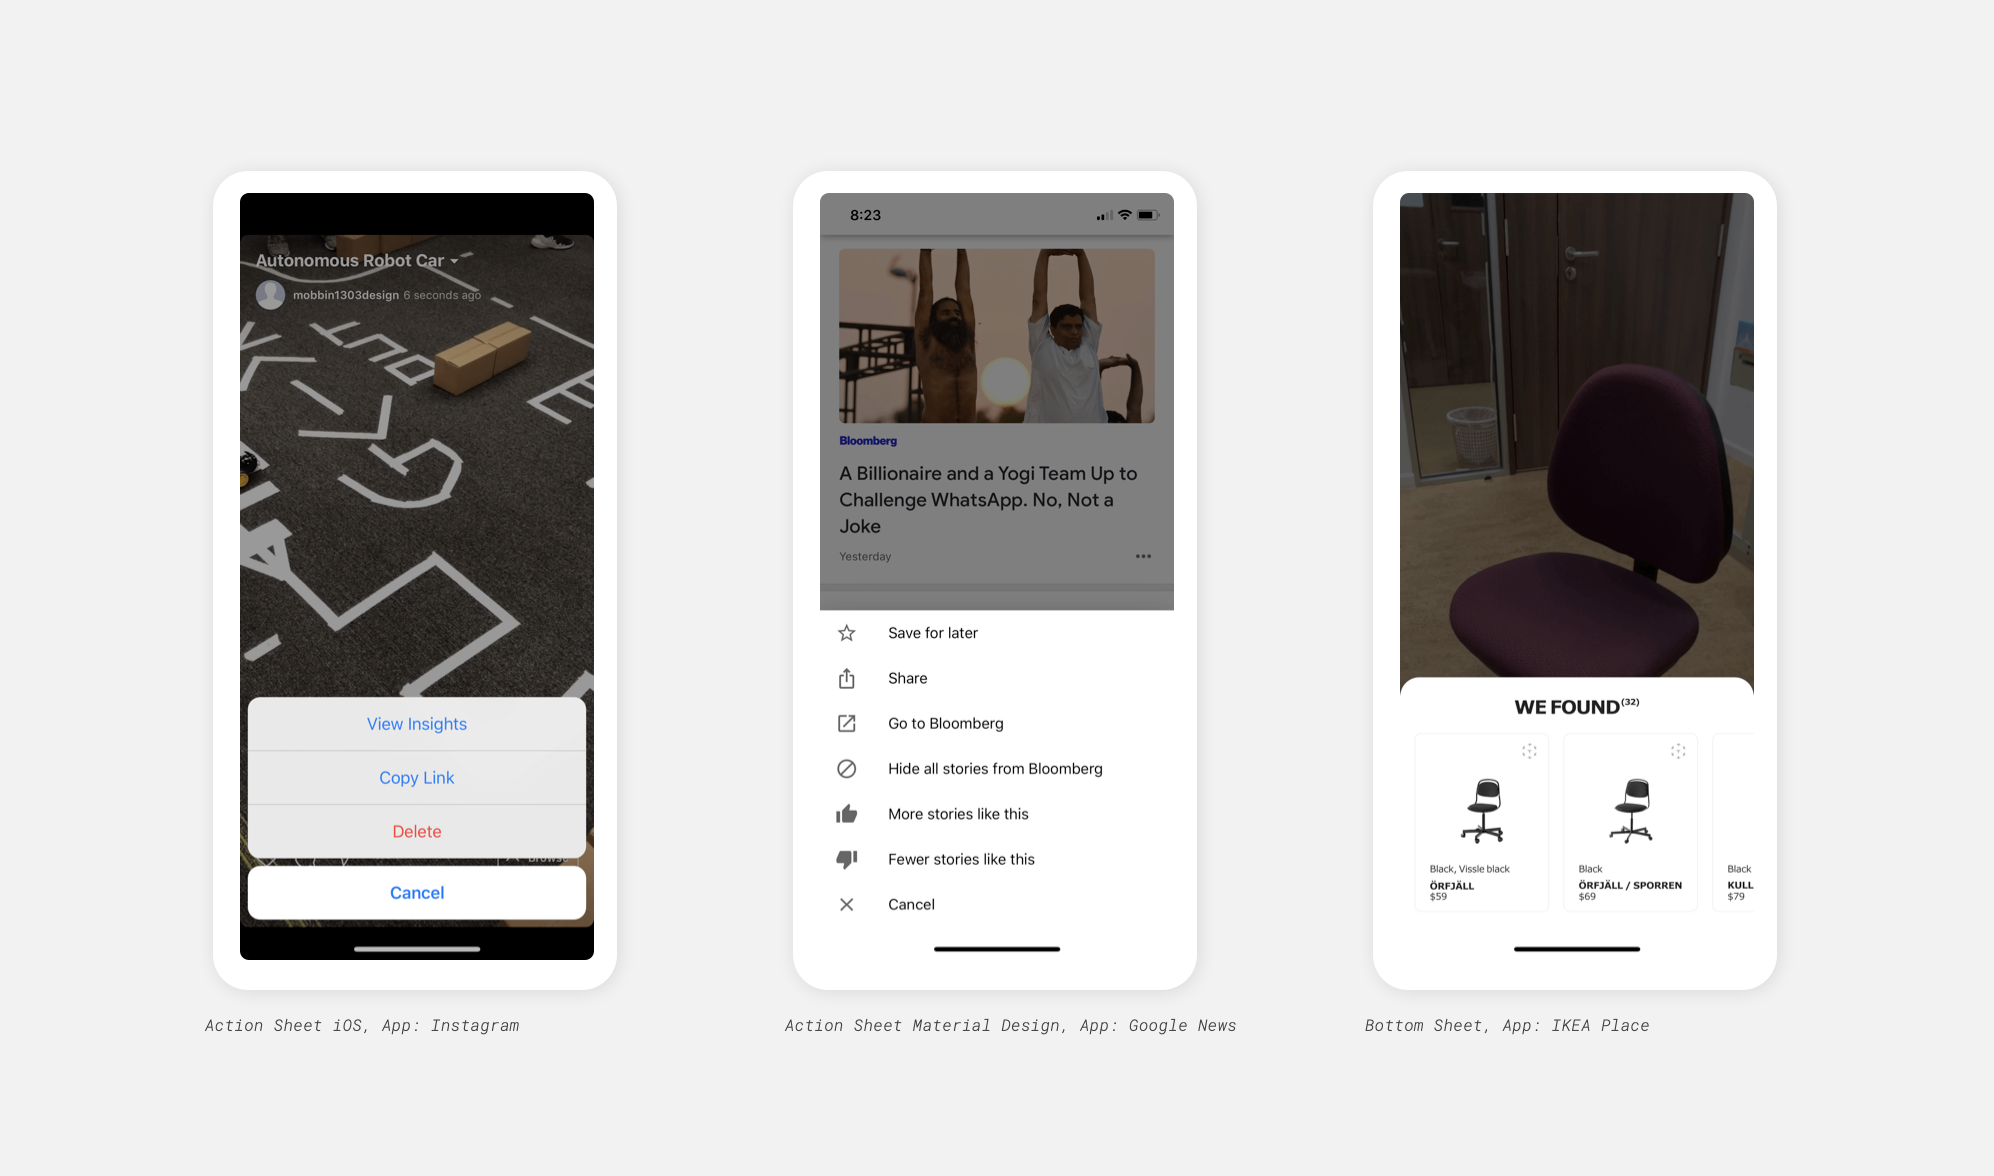 State of mobile app design 2019 - UX Collective